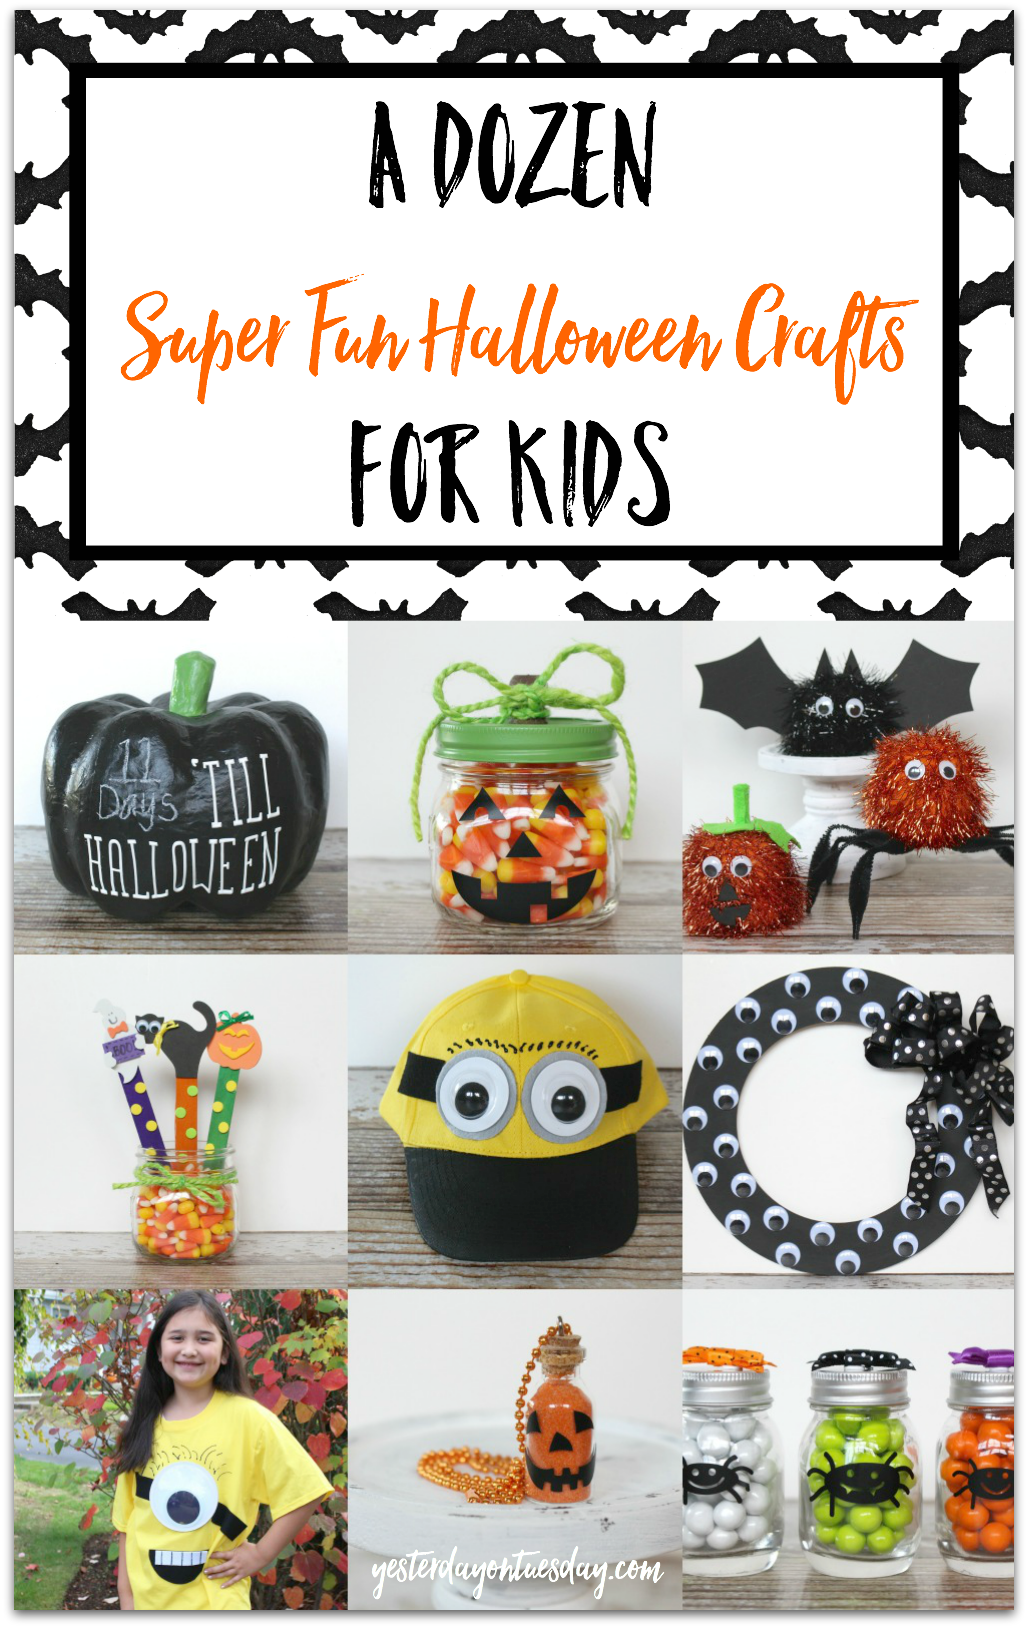 A Dozen Halloween Crafts for Kids